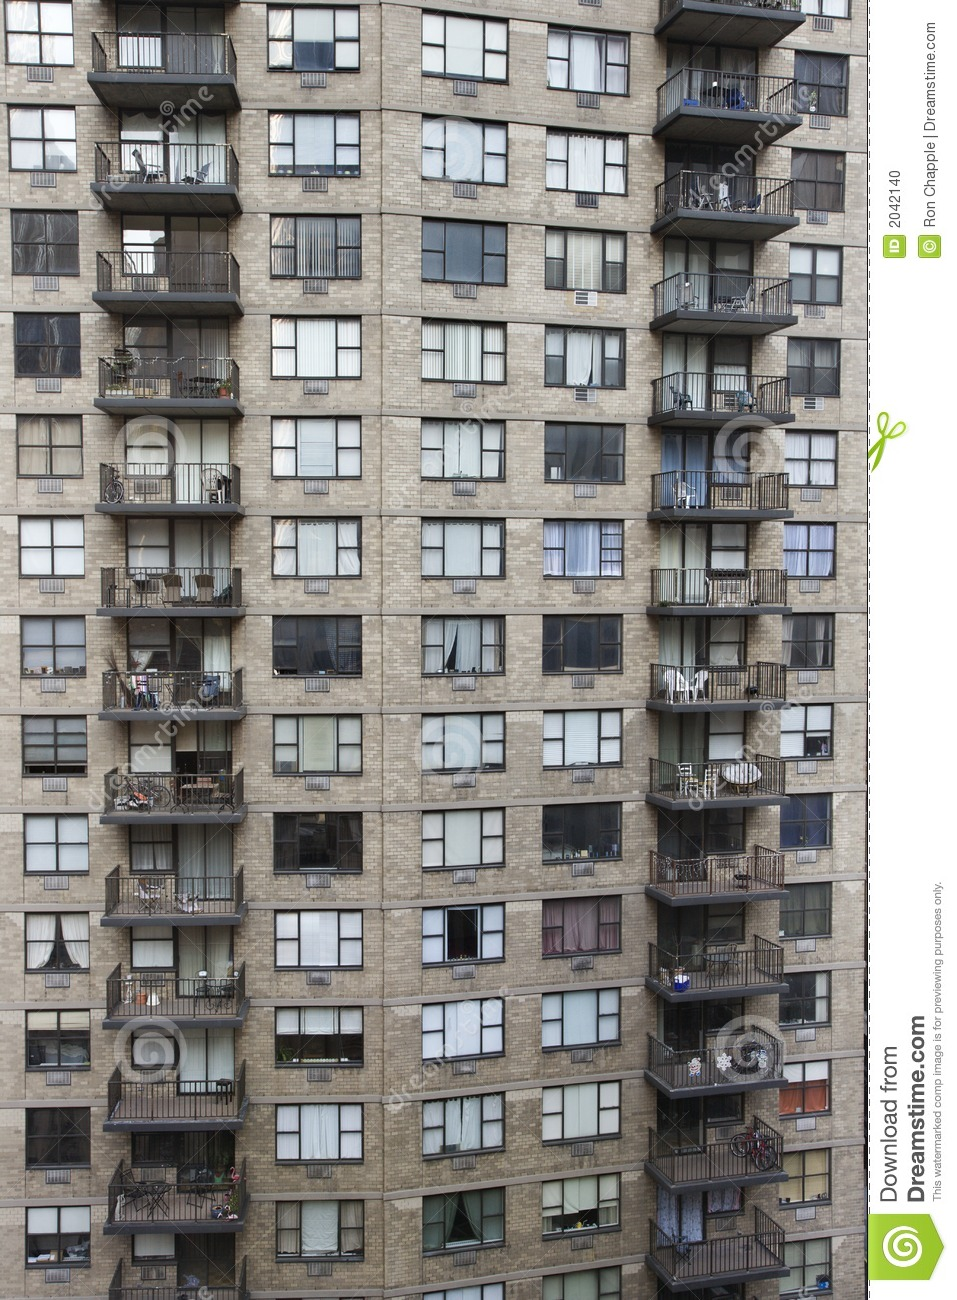 New York City Apartment Building Stock Photo Image 2042140